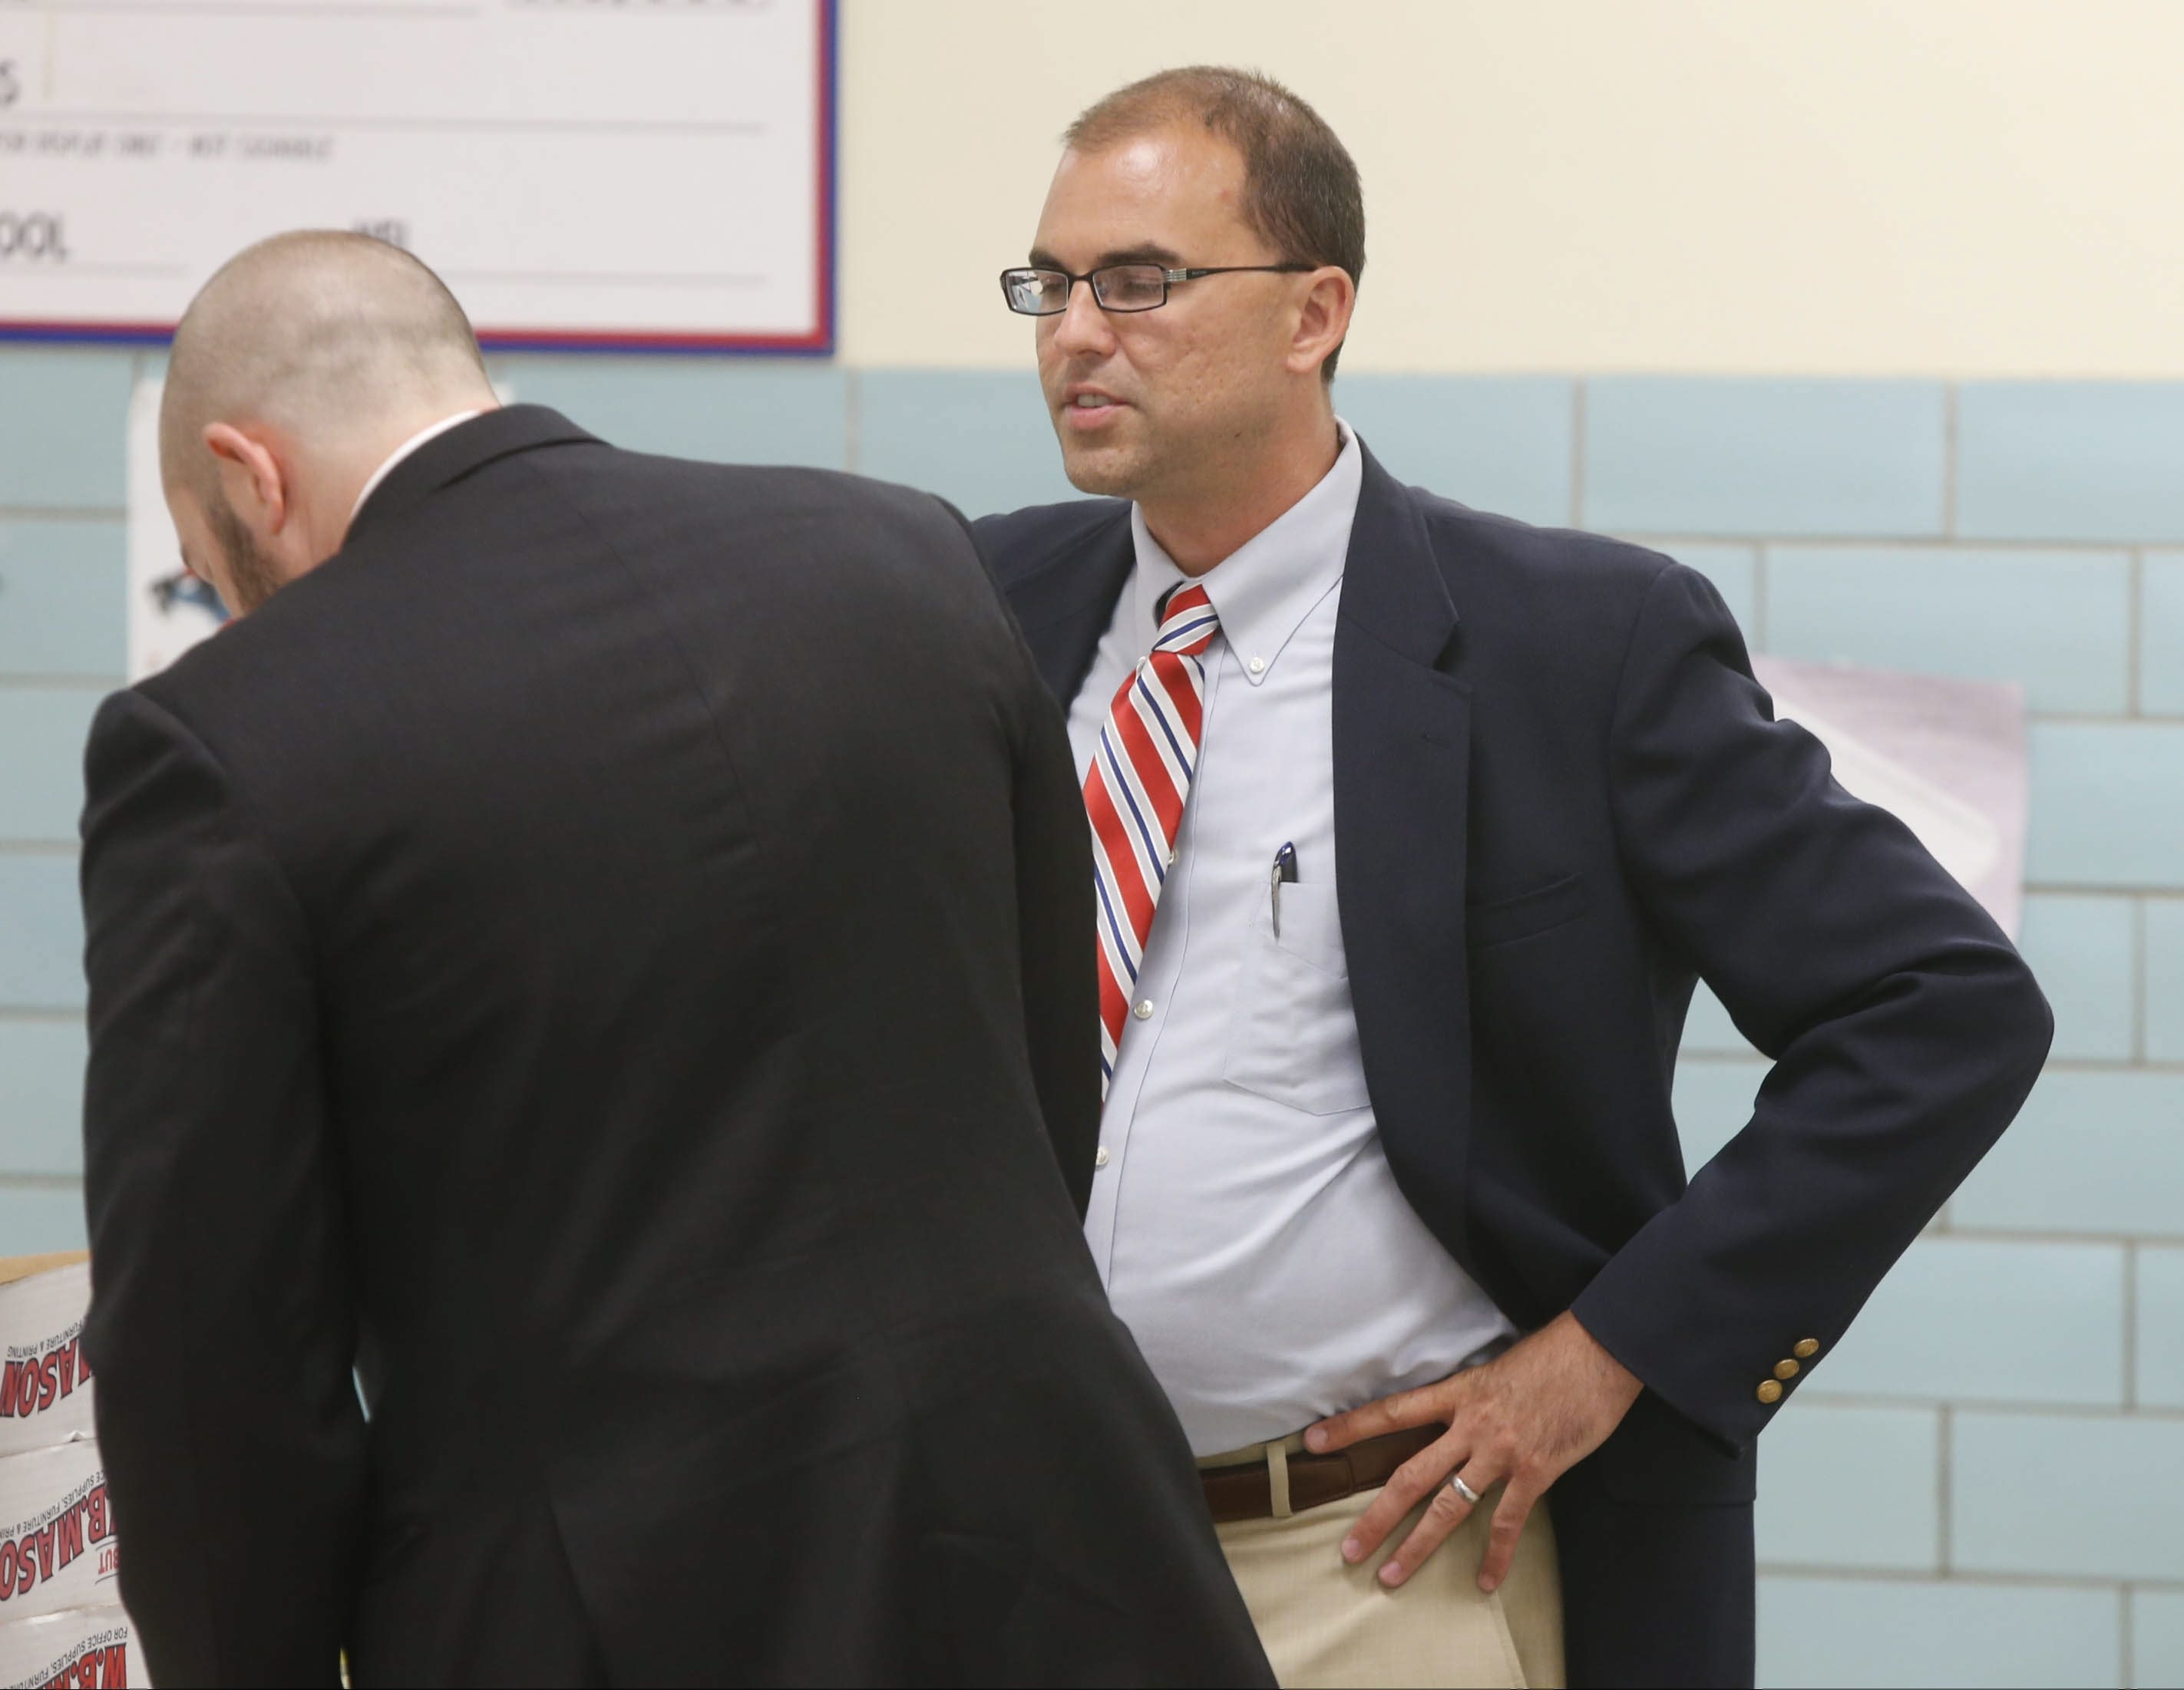 Hamburg School Superintendent Richard Jetter confessed that he, not vandals, dented his car. He also admits drinking in a bar.